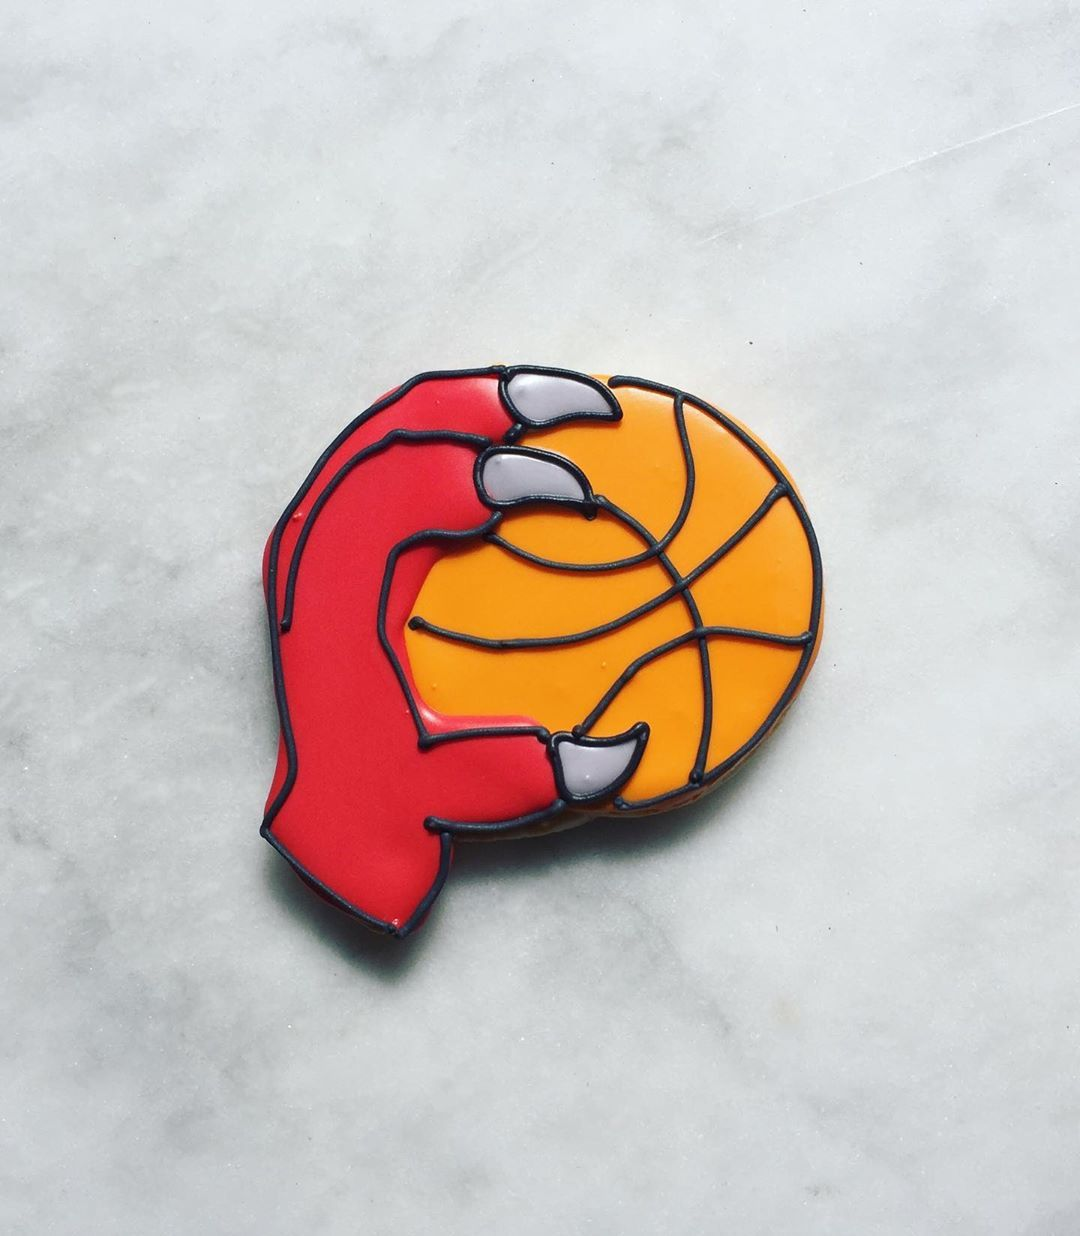 Cheering them on in cookie form! cookie art, NBA